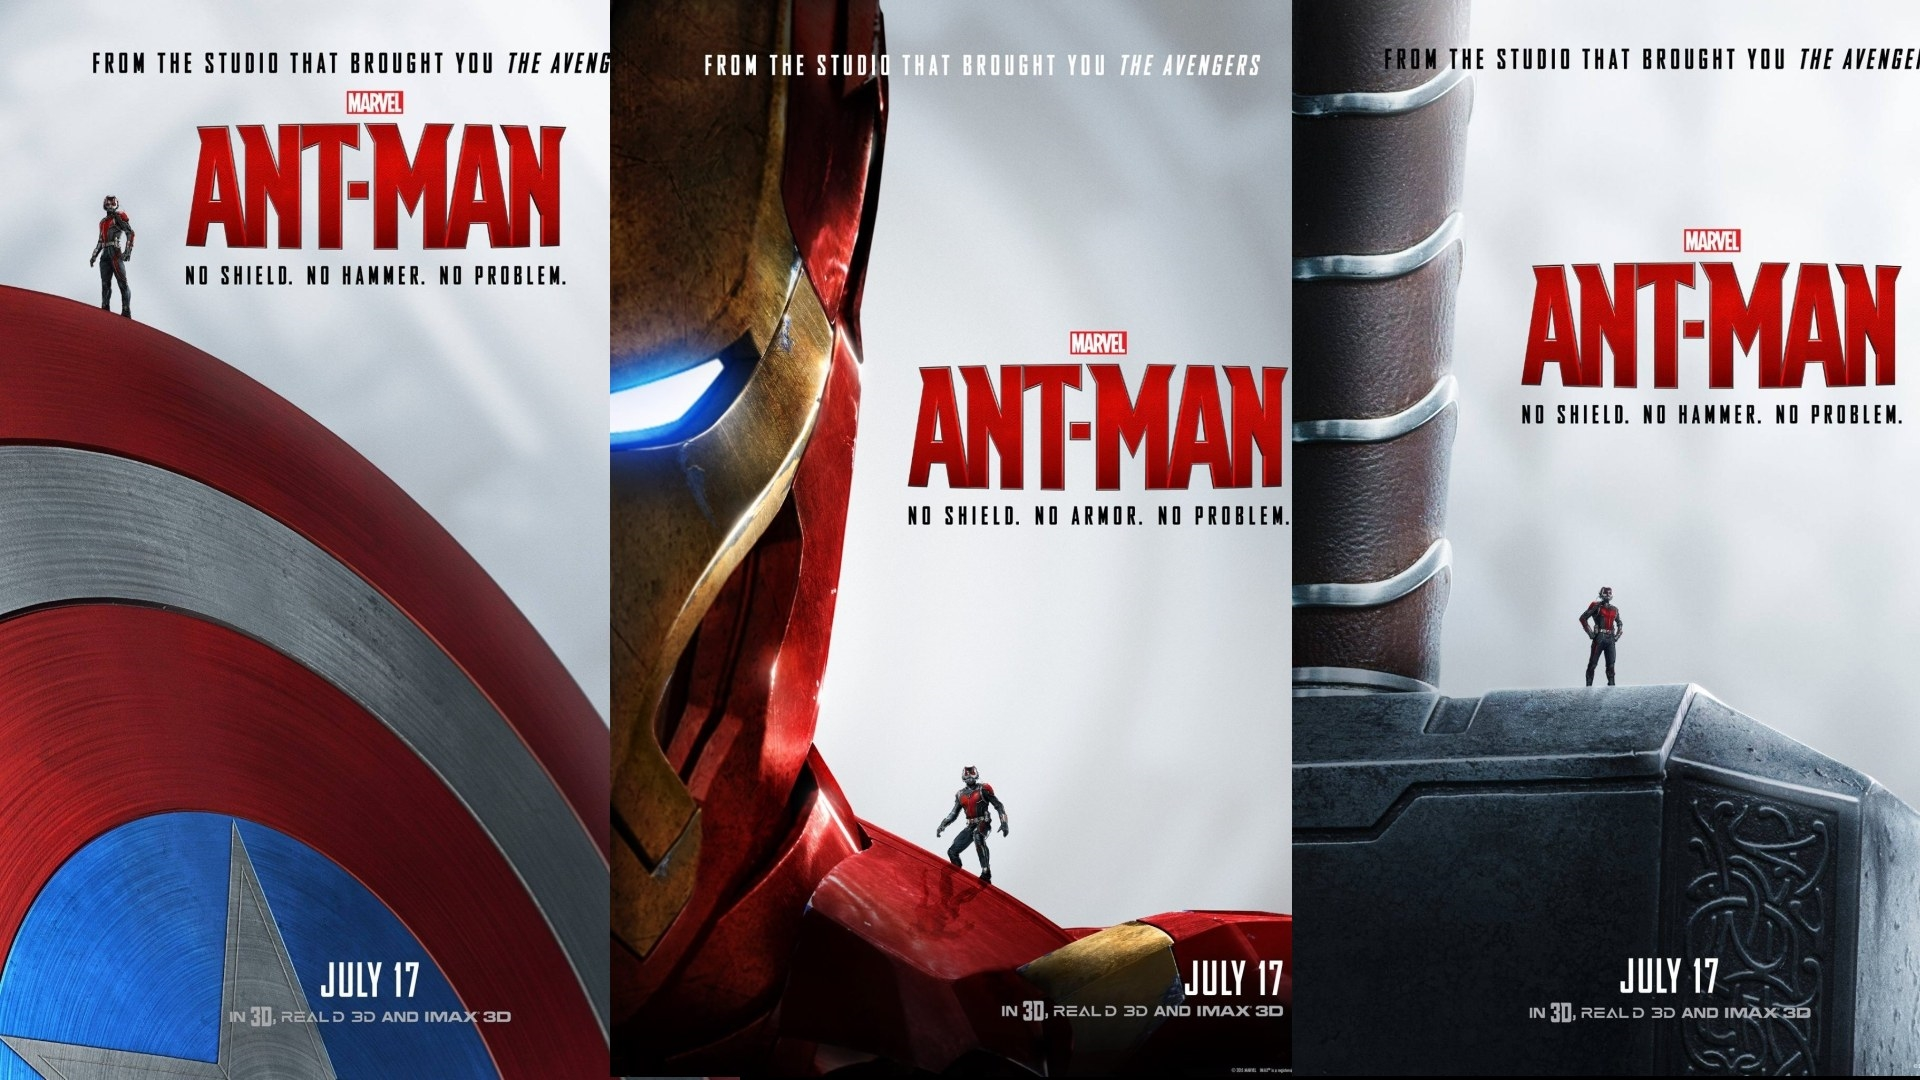 New background images environment free wallpaper - Ant Man 2015 Movie Super Hero Hd Wallpaper